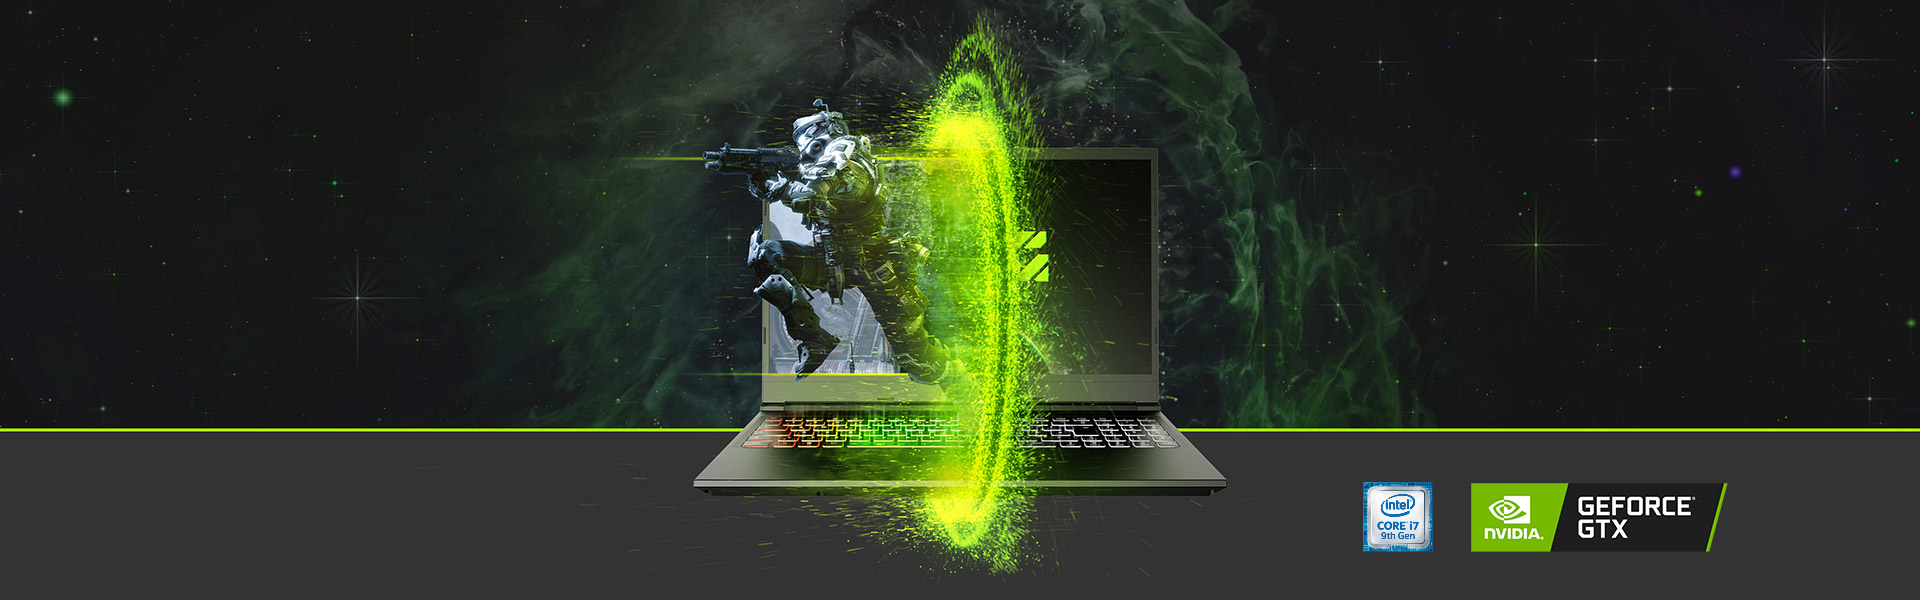 XMG CORE - UNDERCOVER GAMING